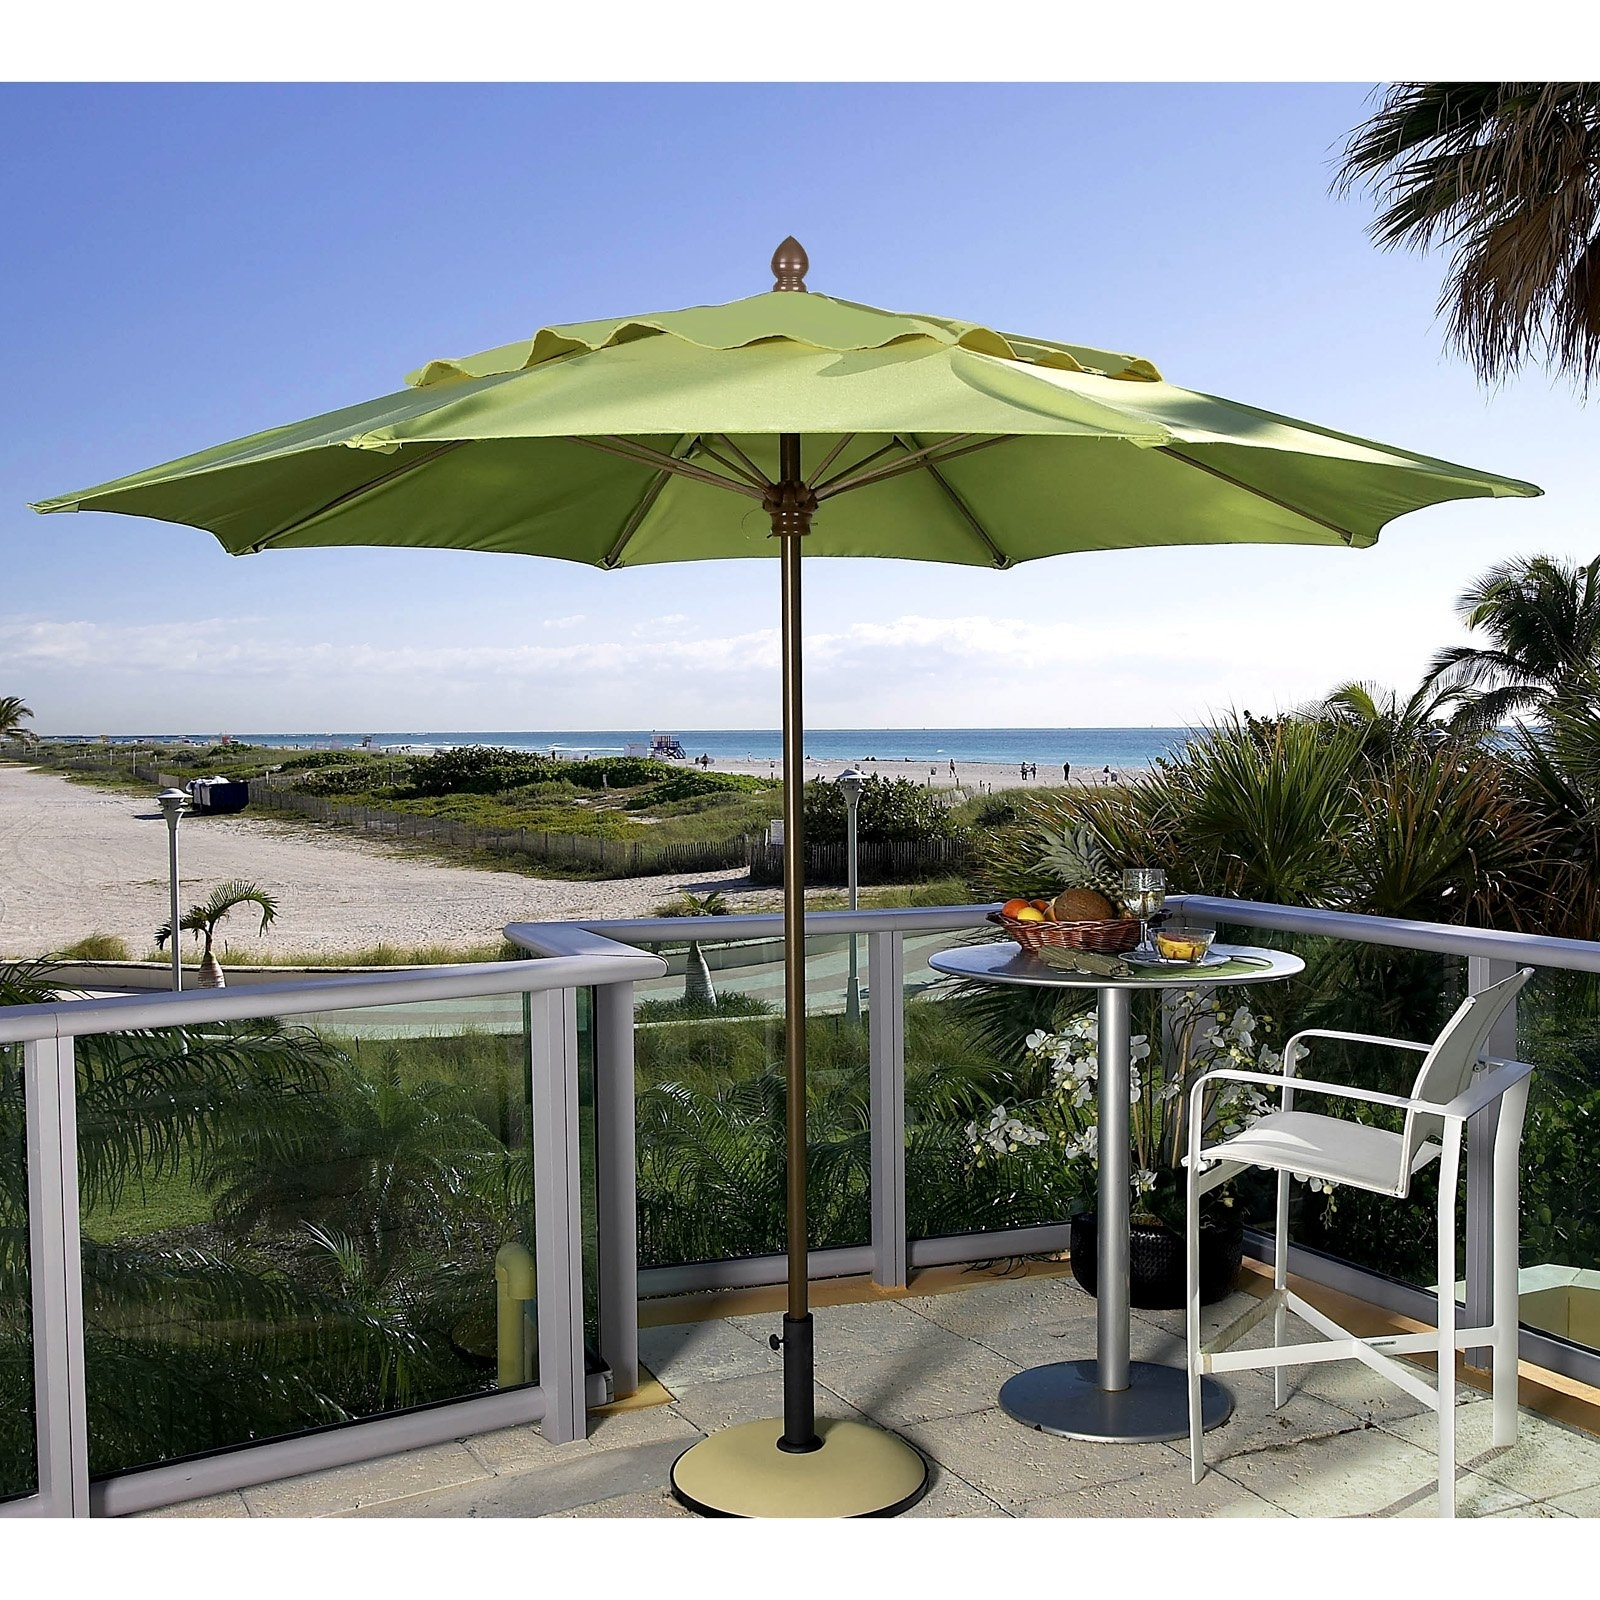 Large Oversized Patio Umbrellas Half For Umbrella Basever Aizi Small With Regard To Newest Half Patio Umbrellas (View 12 of 20)